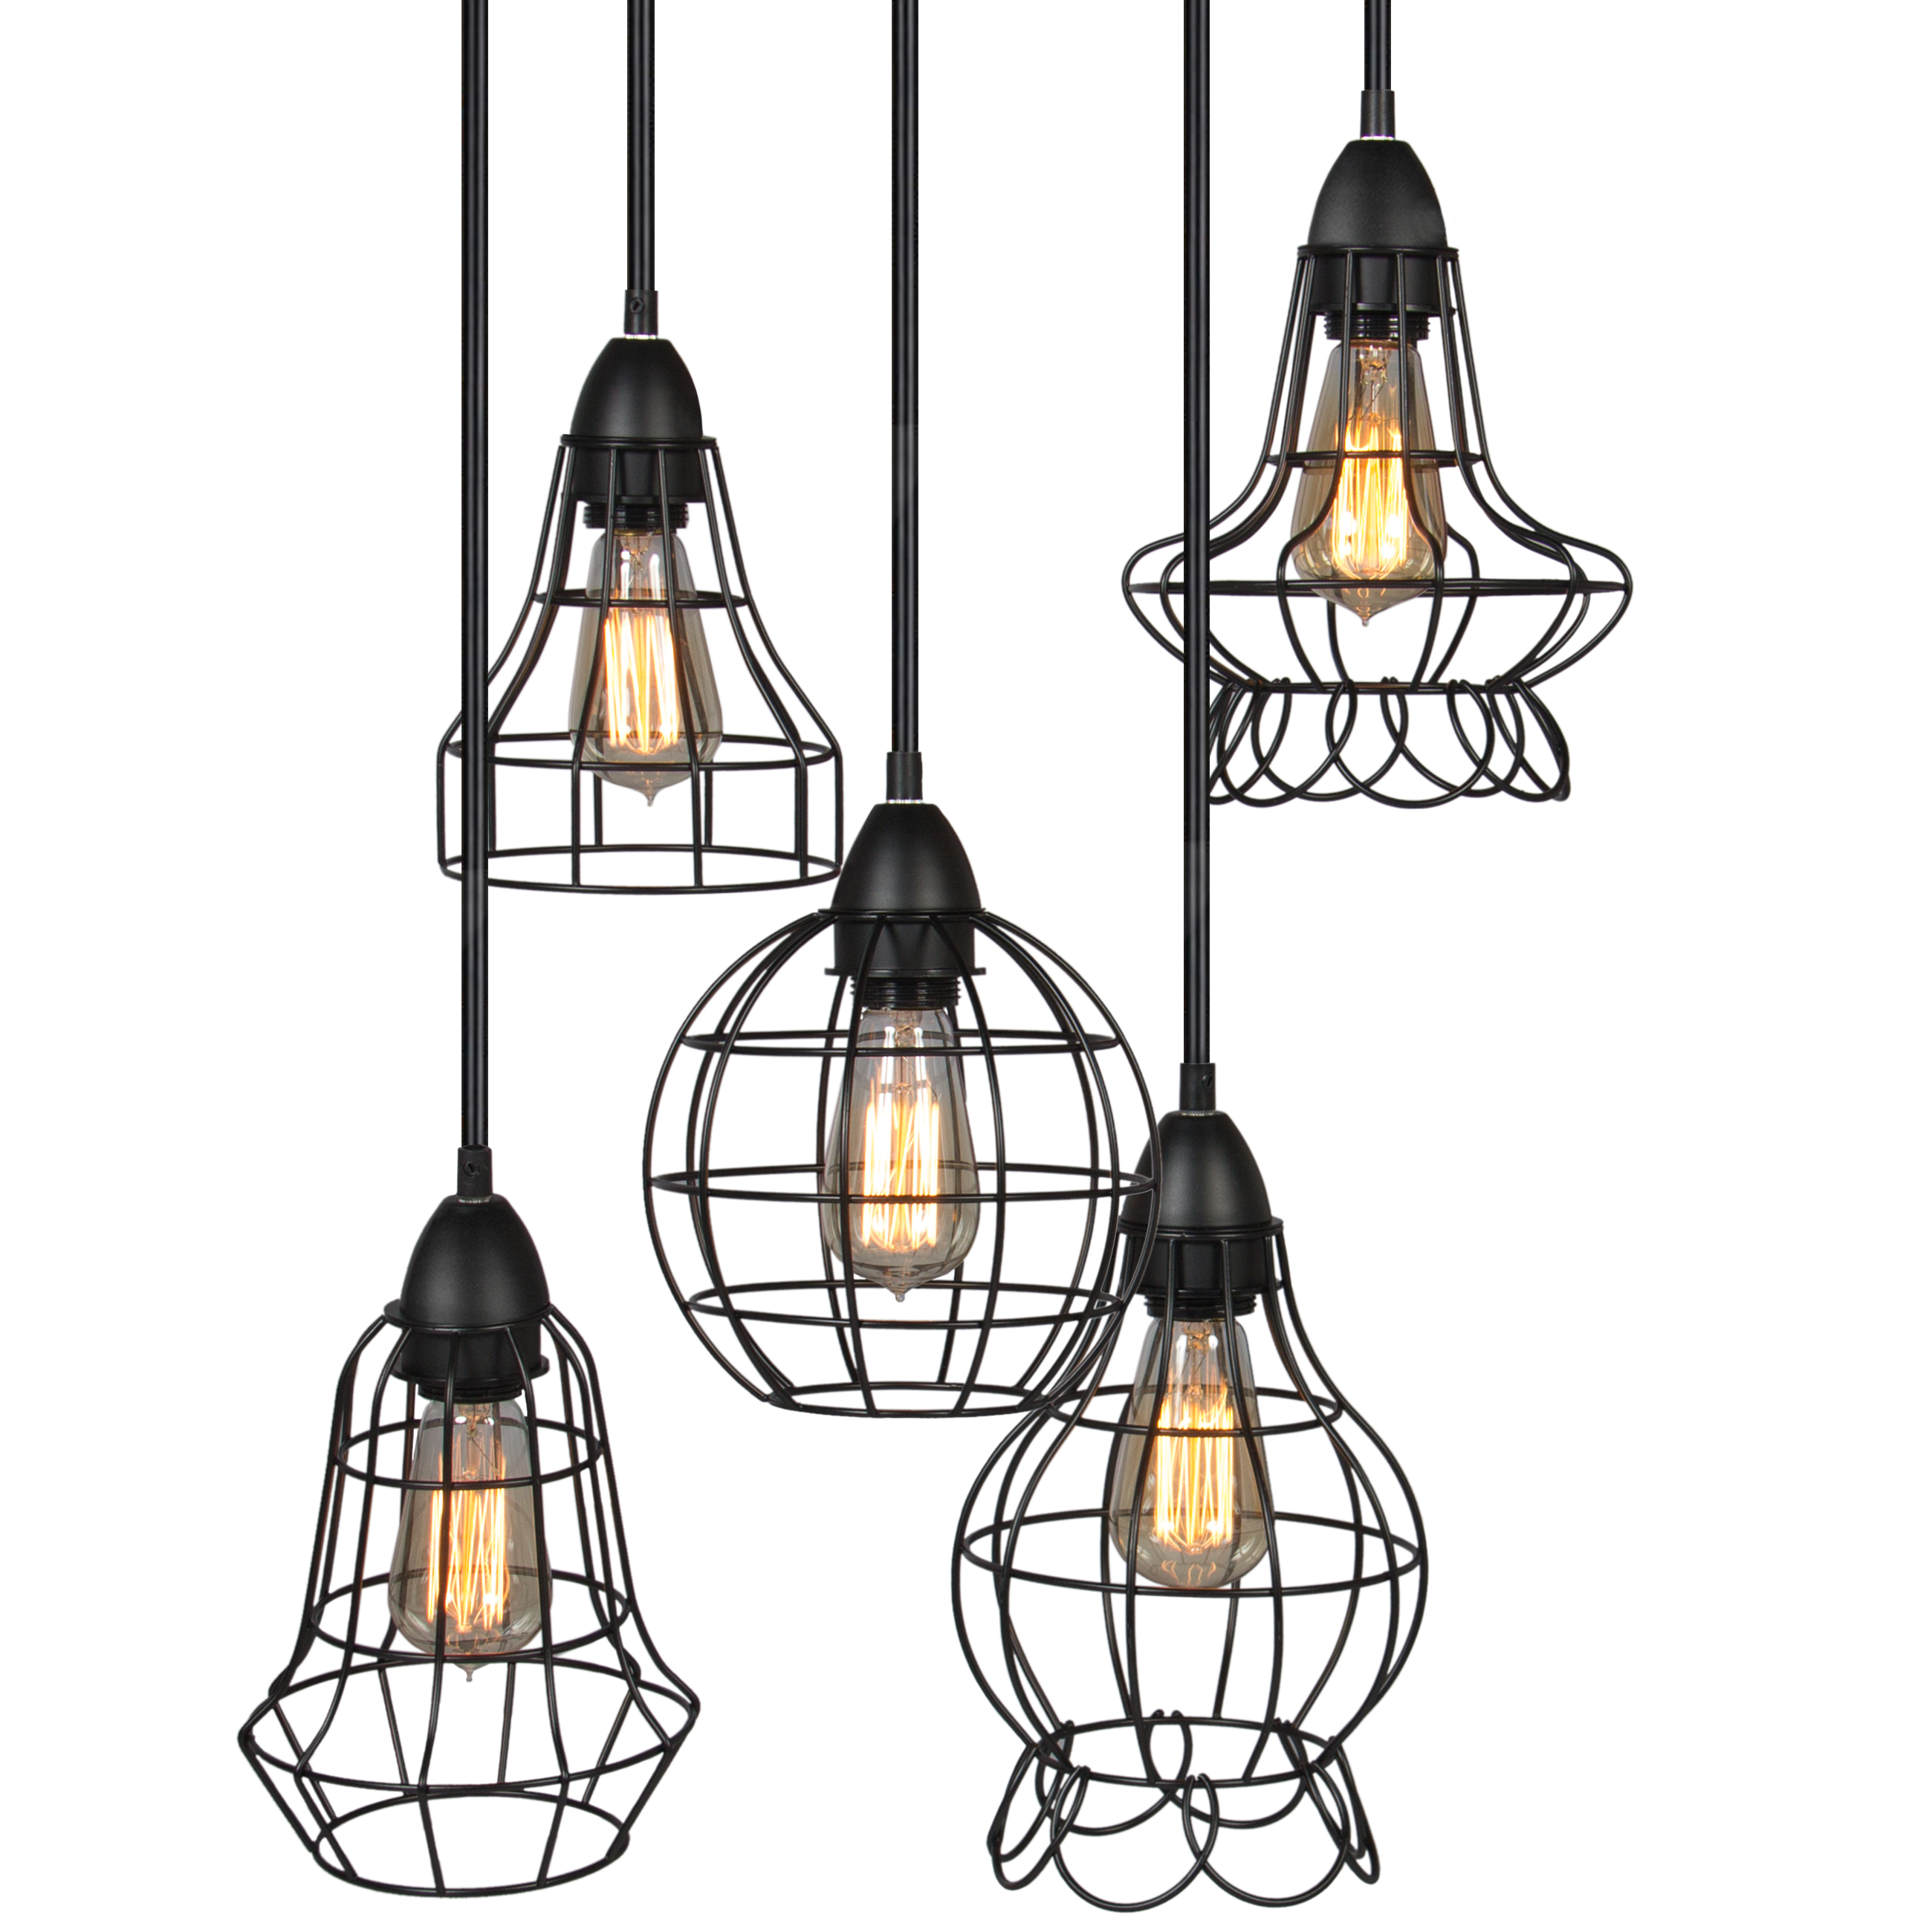 Best Choice Products Industrial Vintage Lighting Ceiling